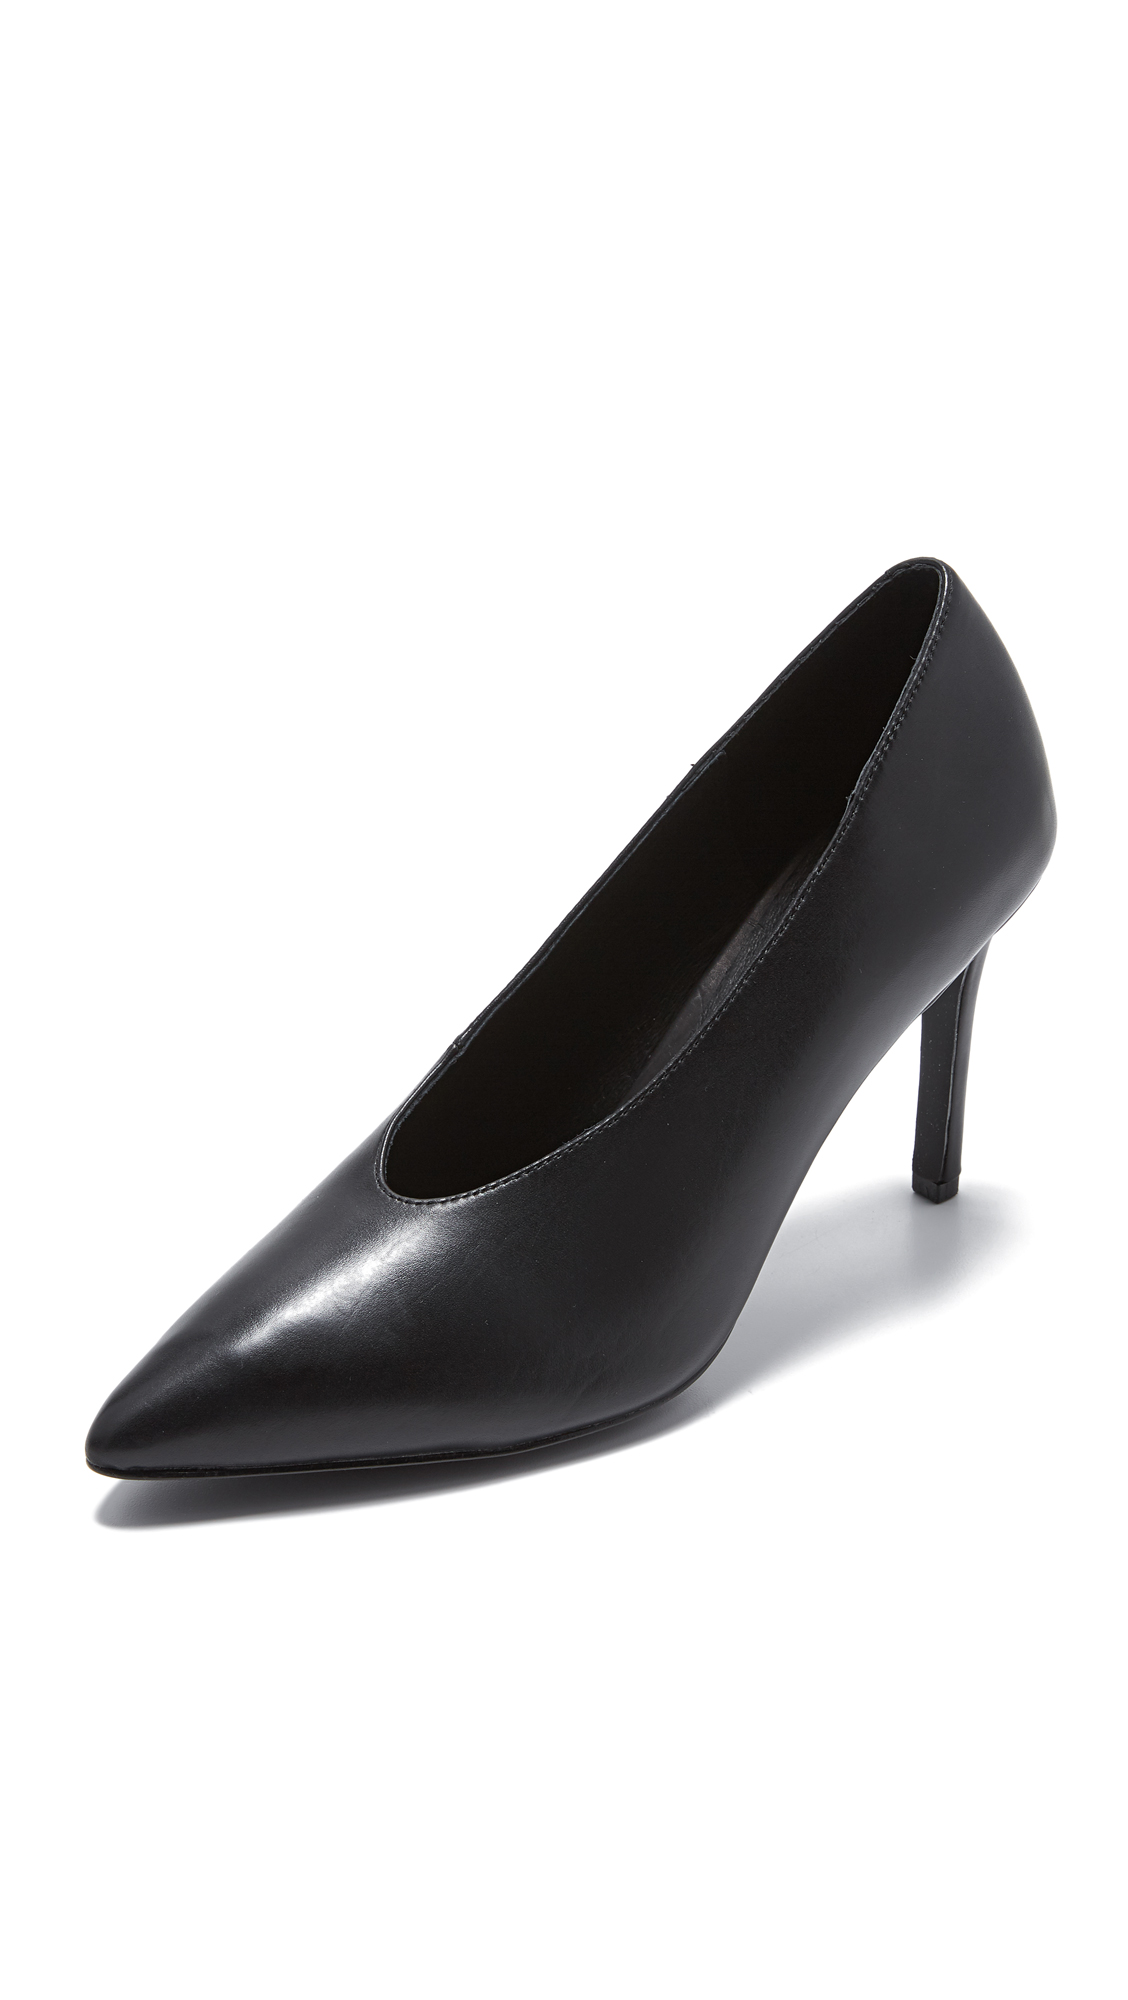 Steven Aiken Choke Up Pumps - Black